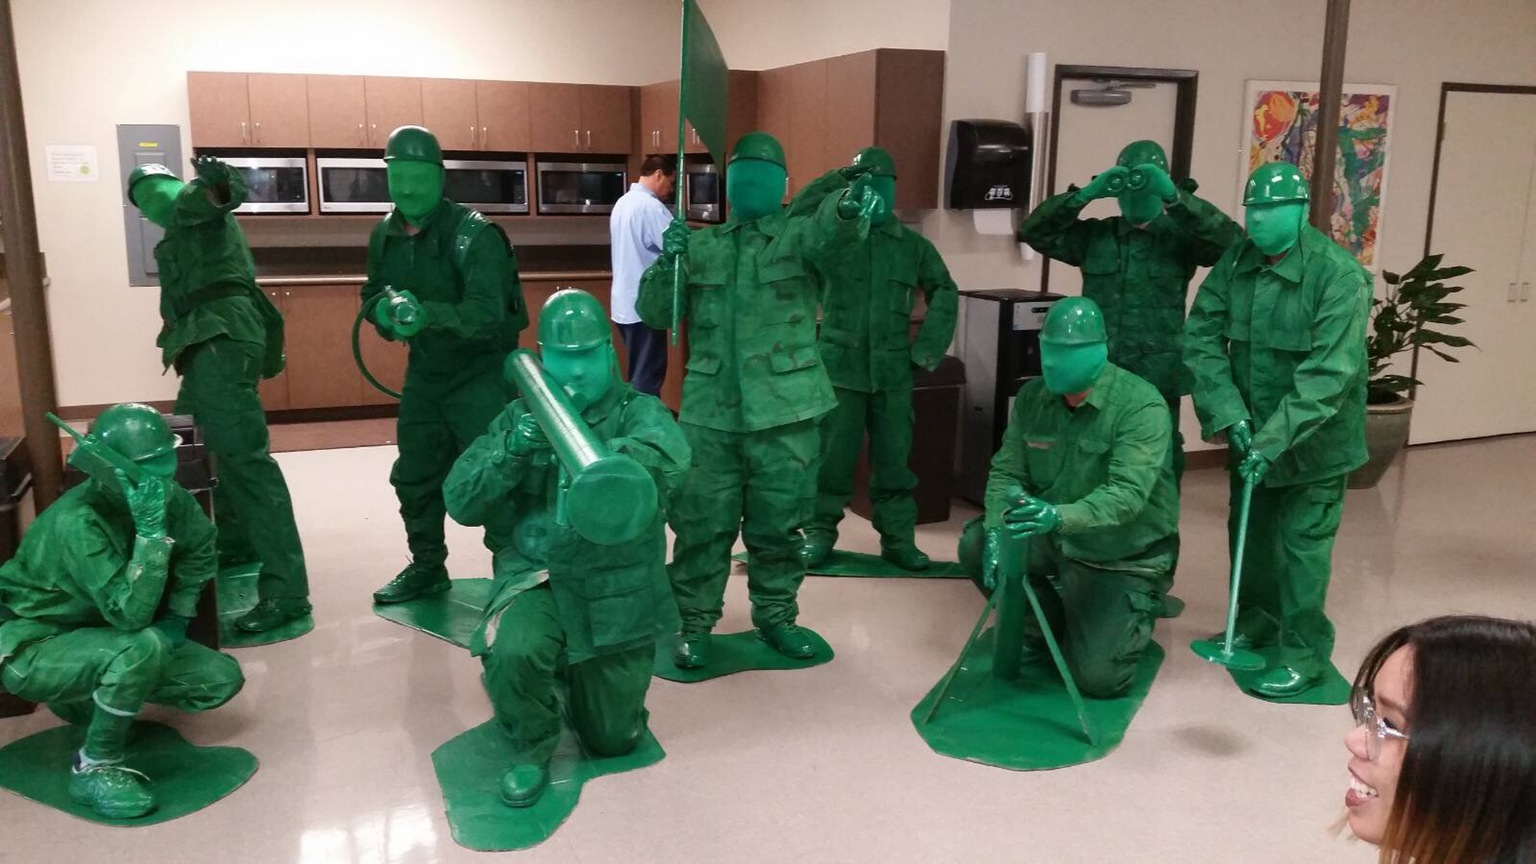 This fantastic toy soldier group costume & 12 Of The Most Amazingly Inventive Halloween Costumes 2016 ...